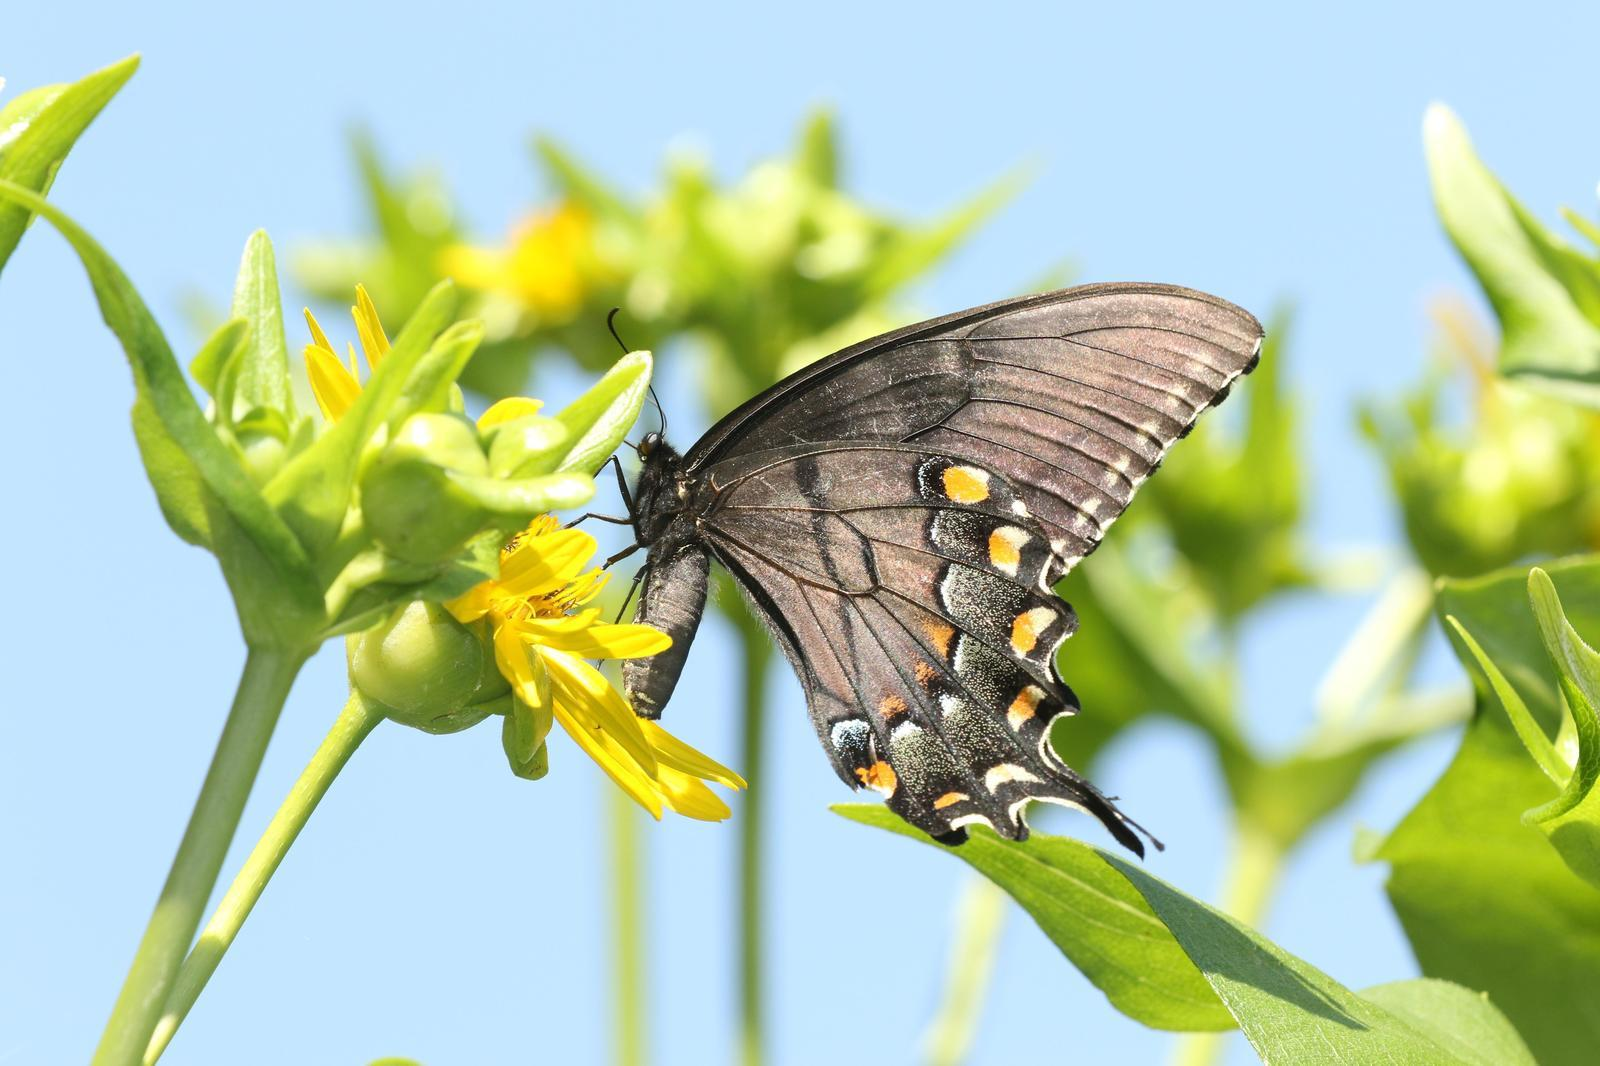 Eastern Tiger Swallowtail Photo by Kristy Baker